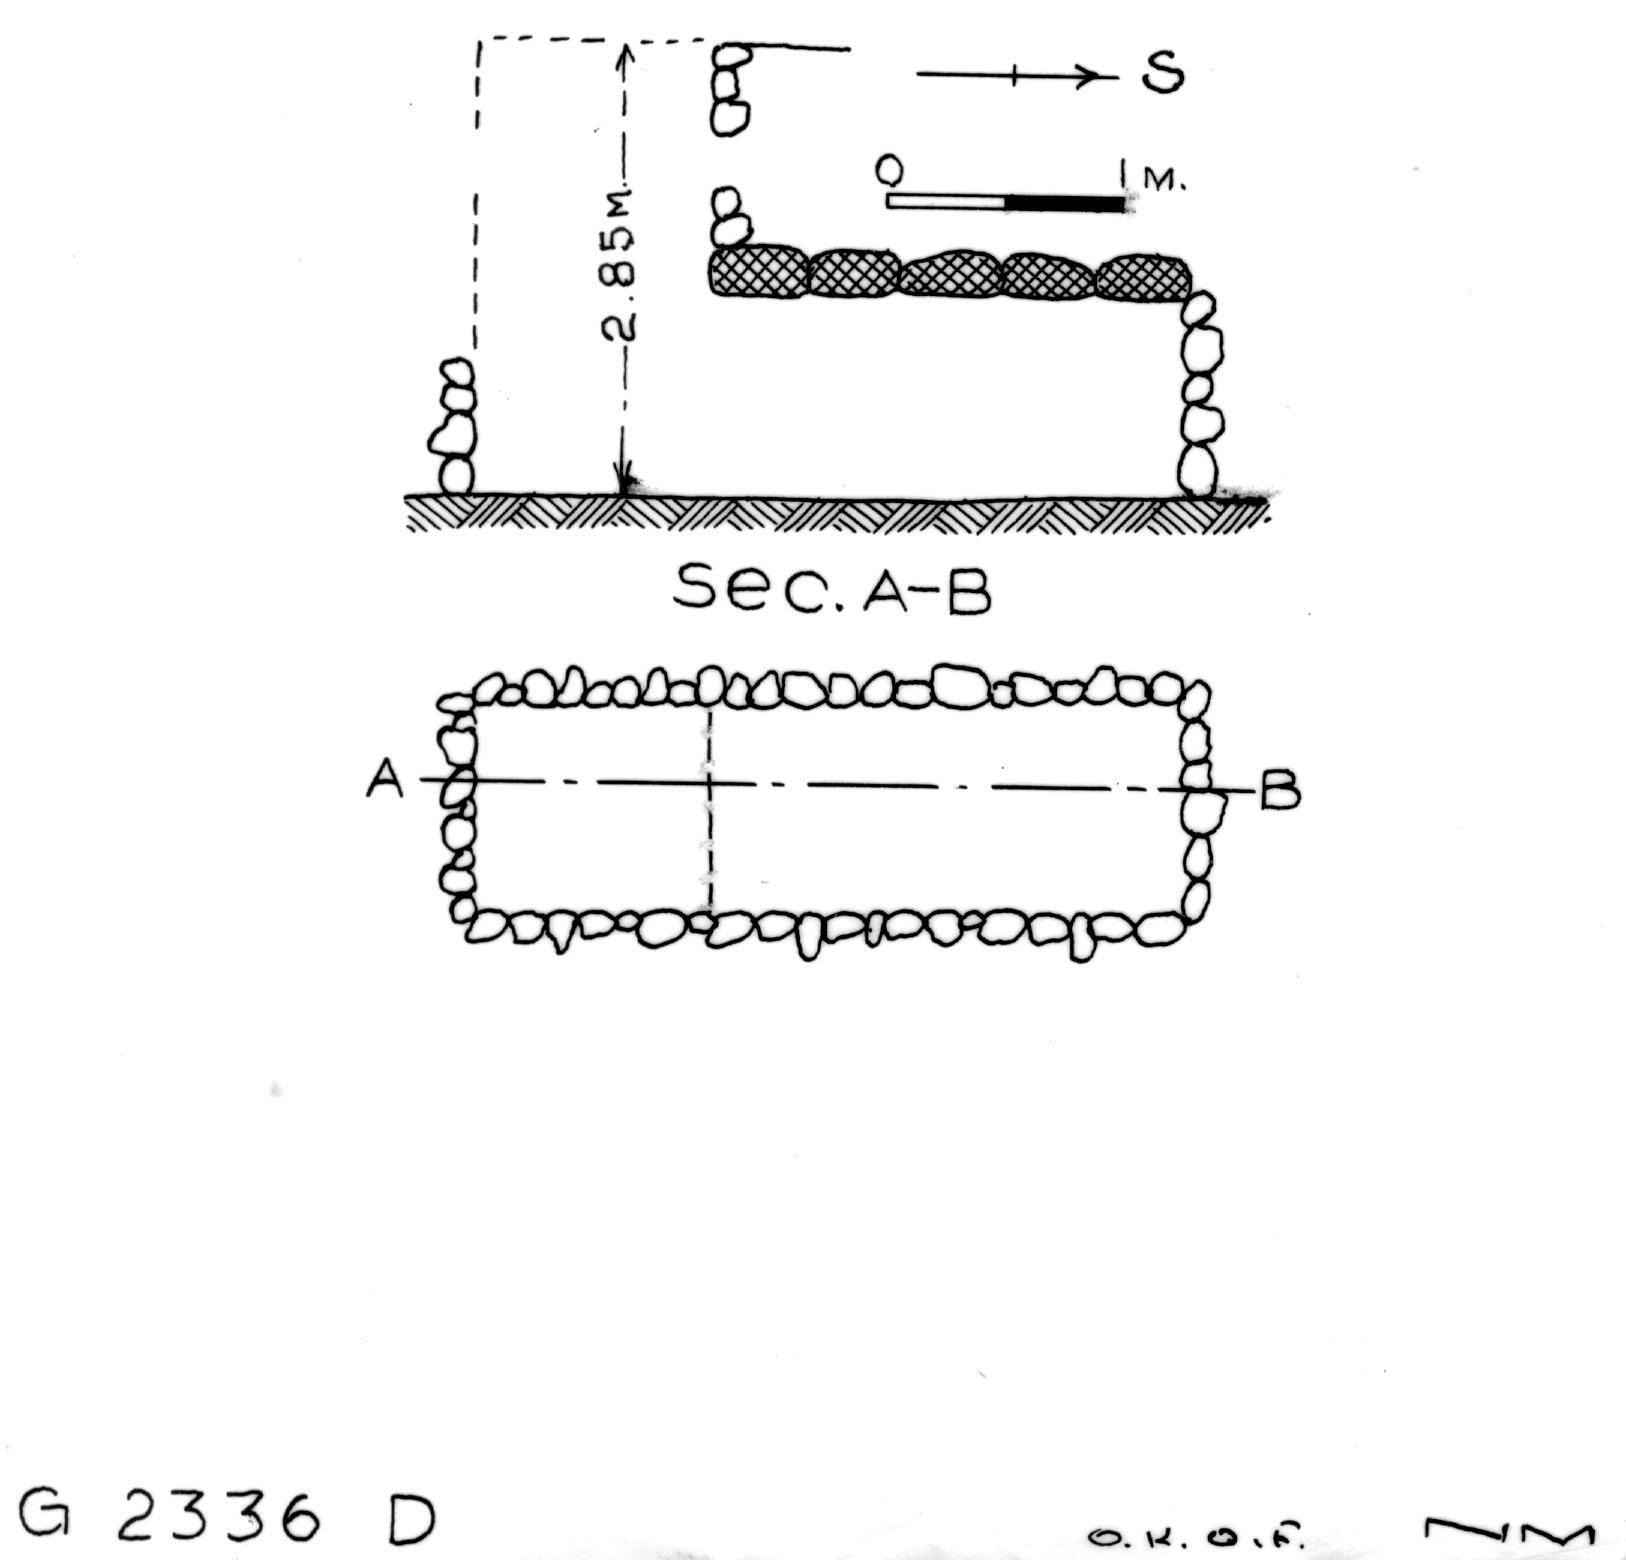 Maps and plans: G 2336, Shaft D